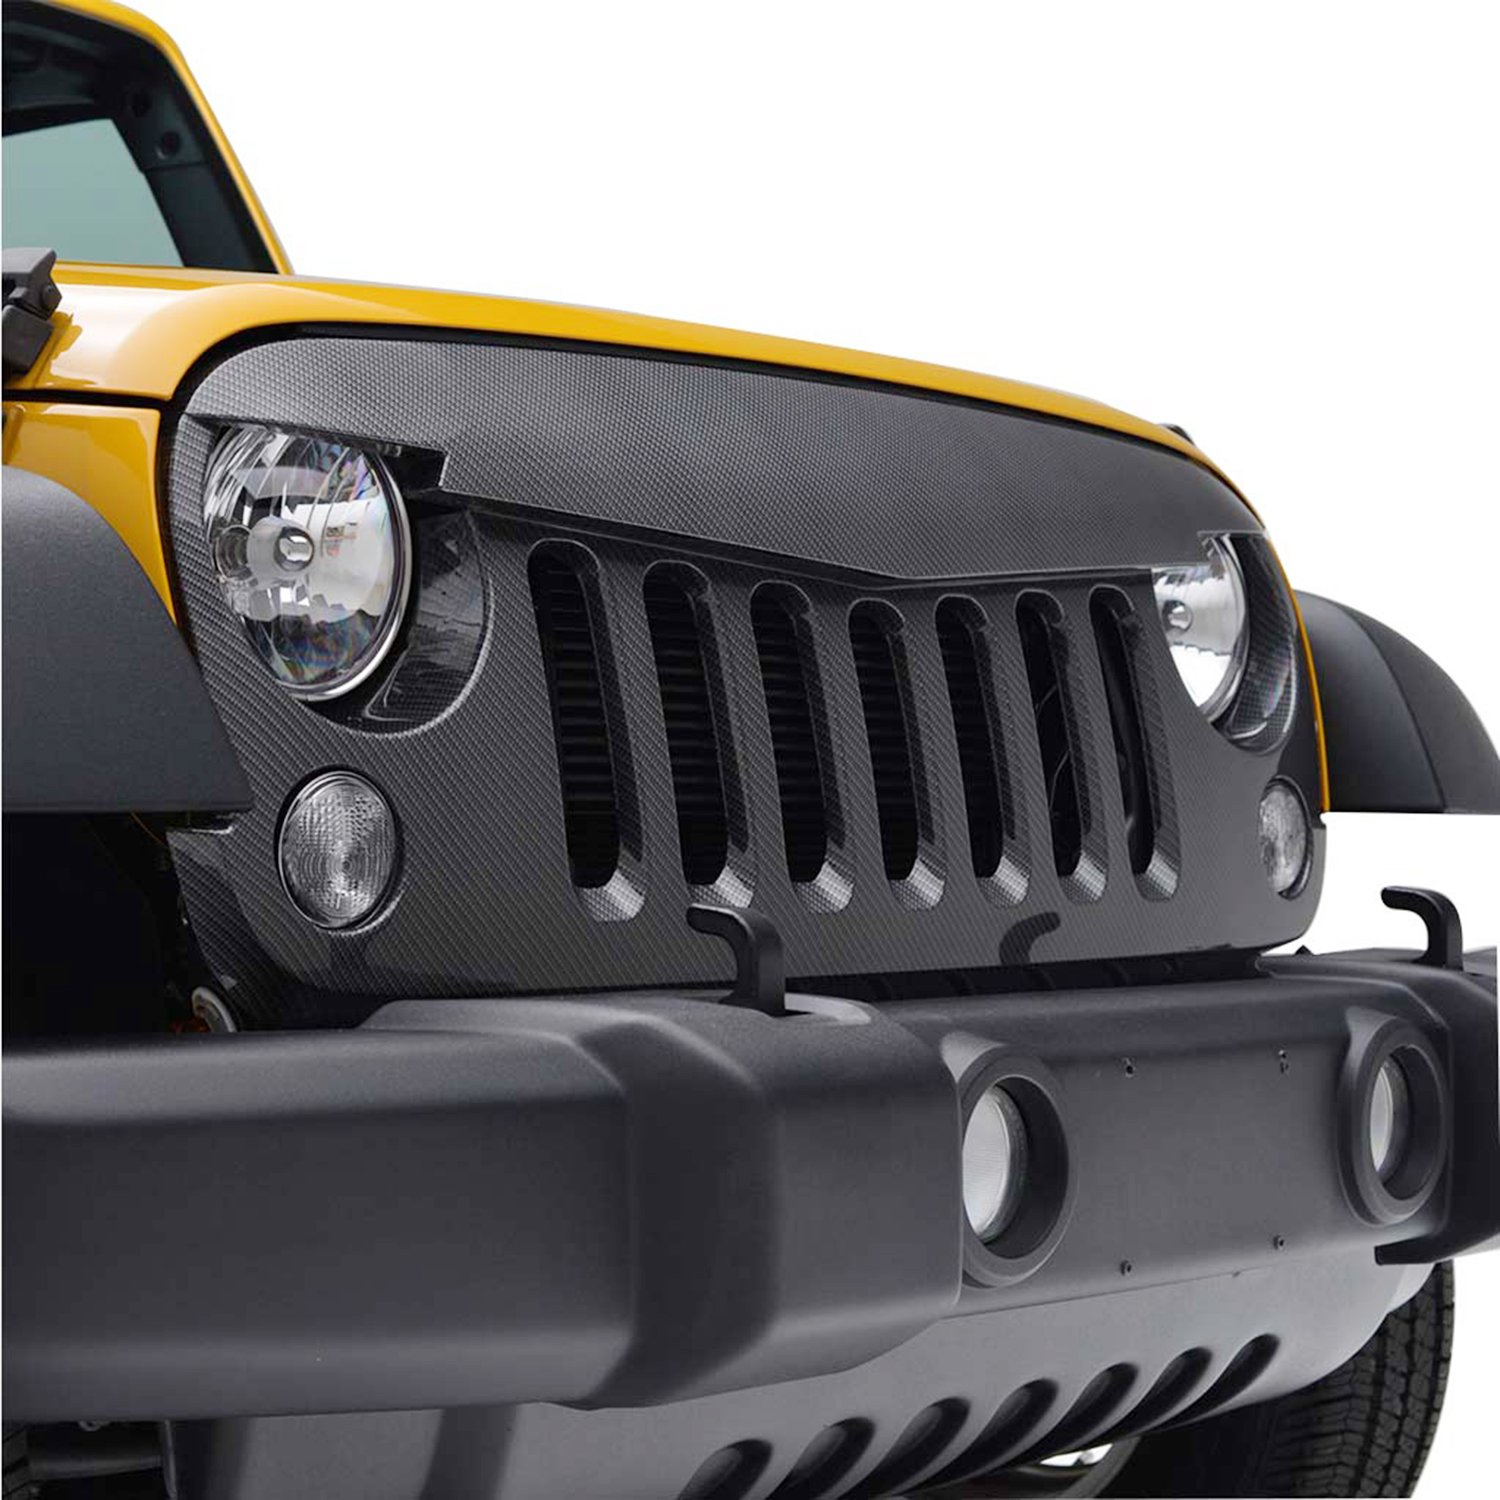 EAG 07-17 Jeep Wrangler JK Angry Bird Grille ABS Replacement Grill Carbon Fiber Look E-Autogrilles